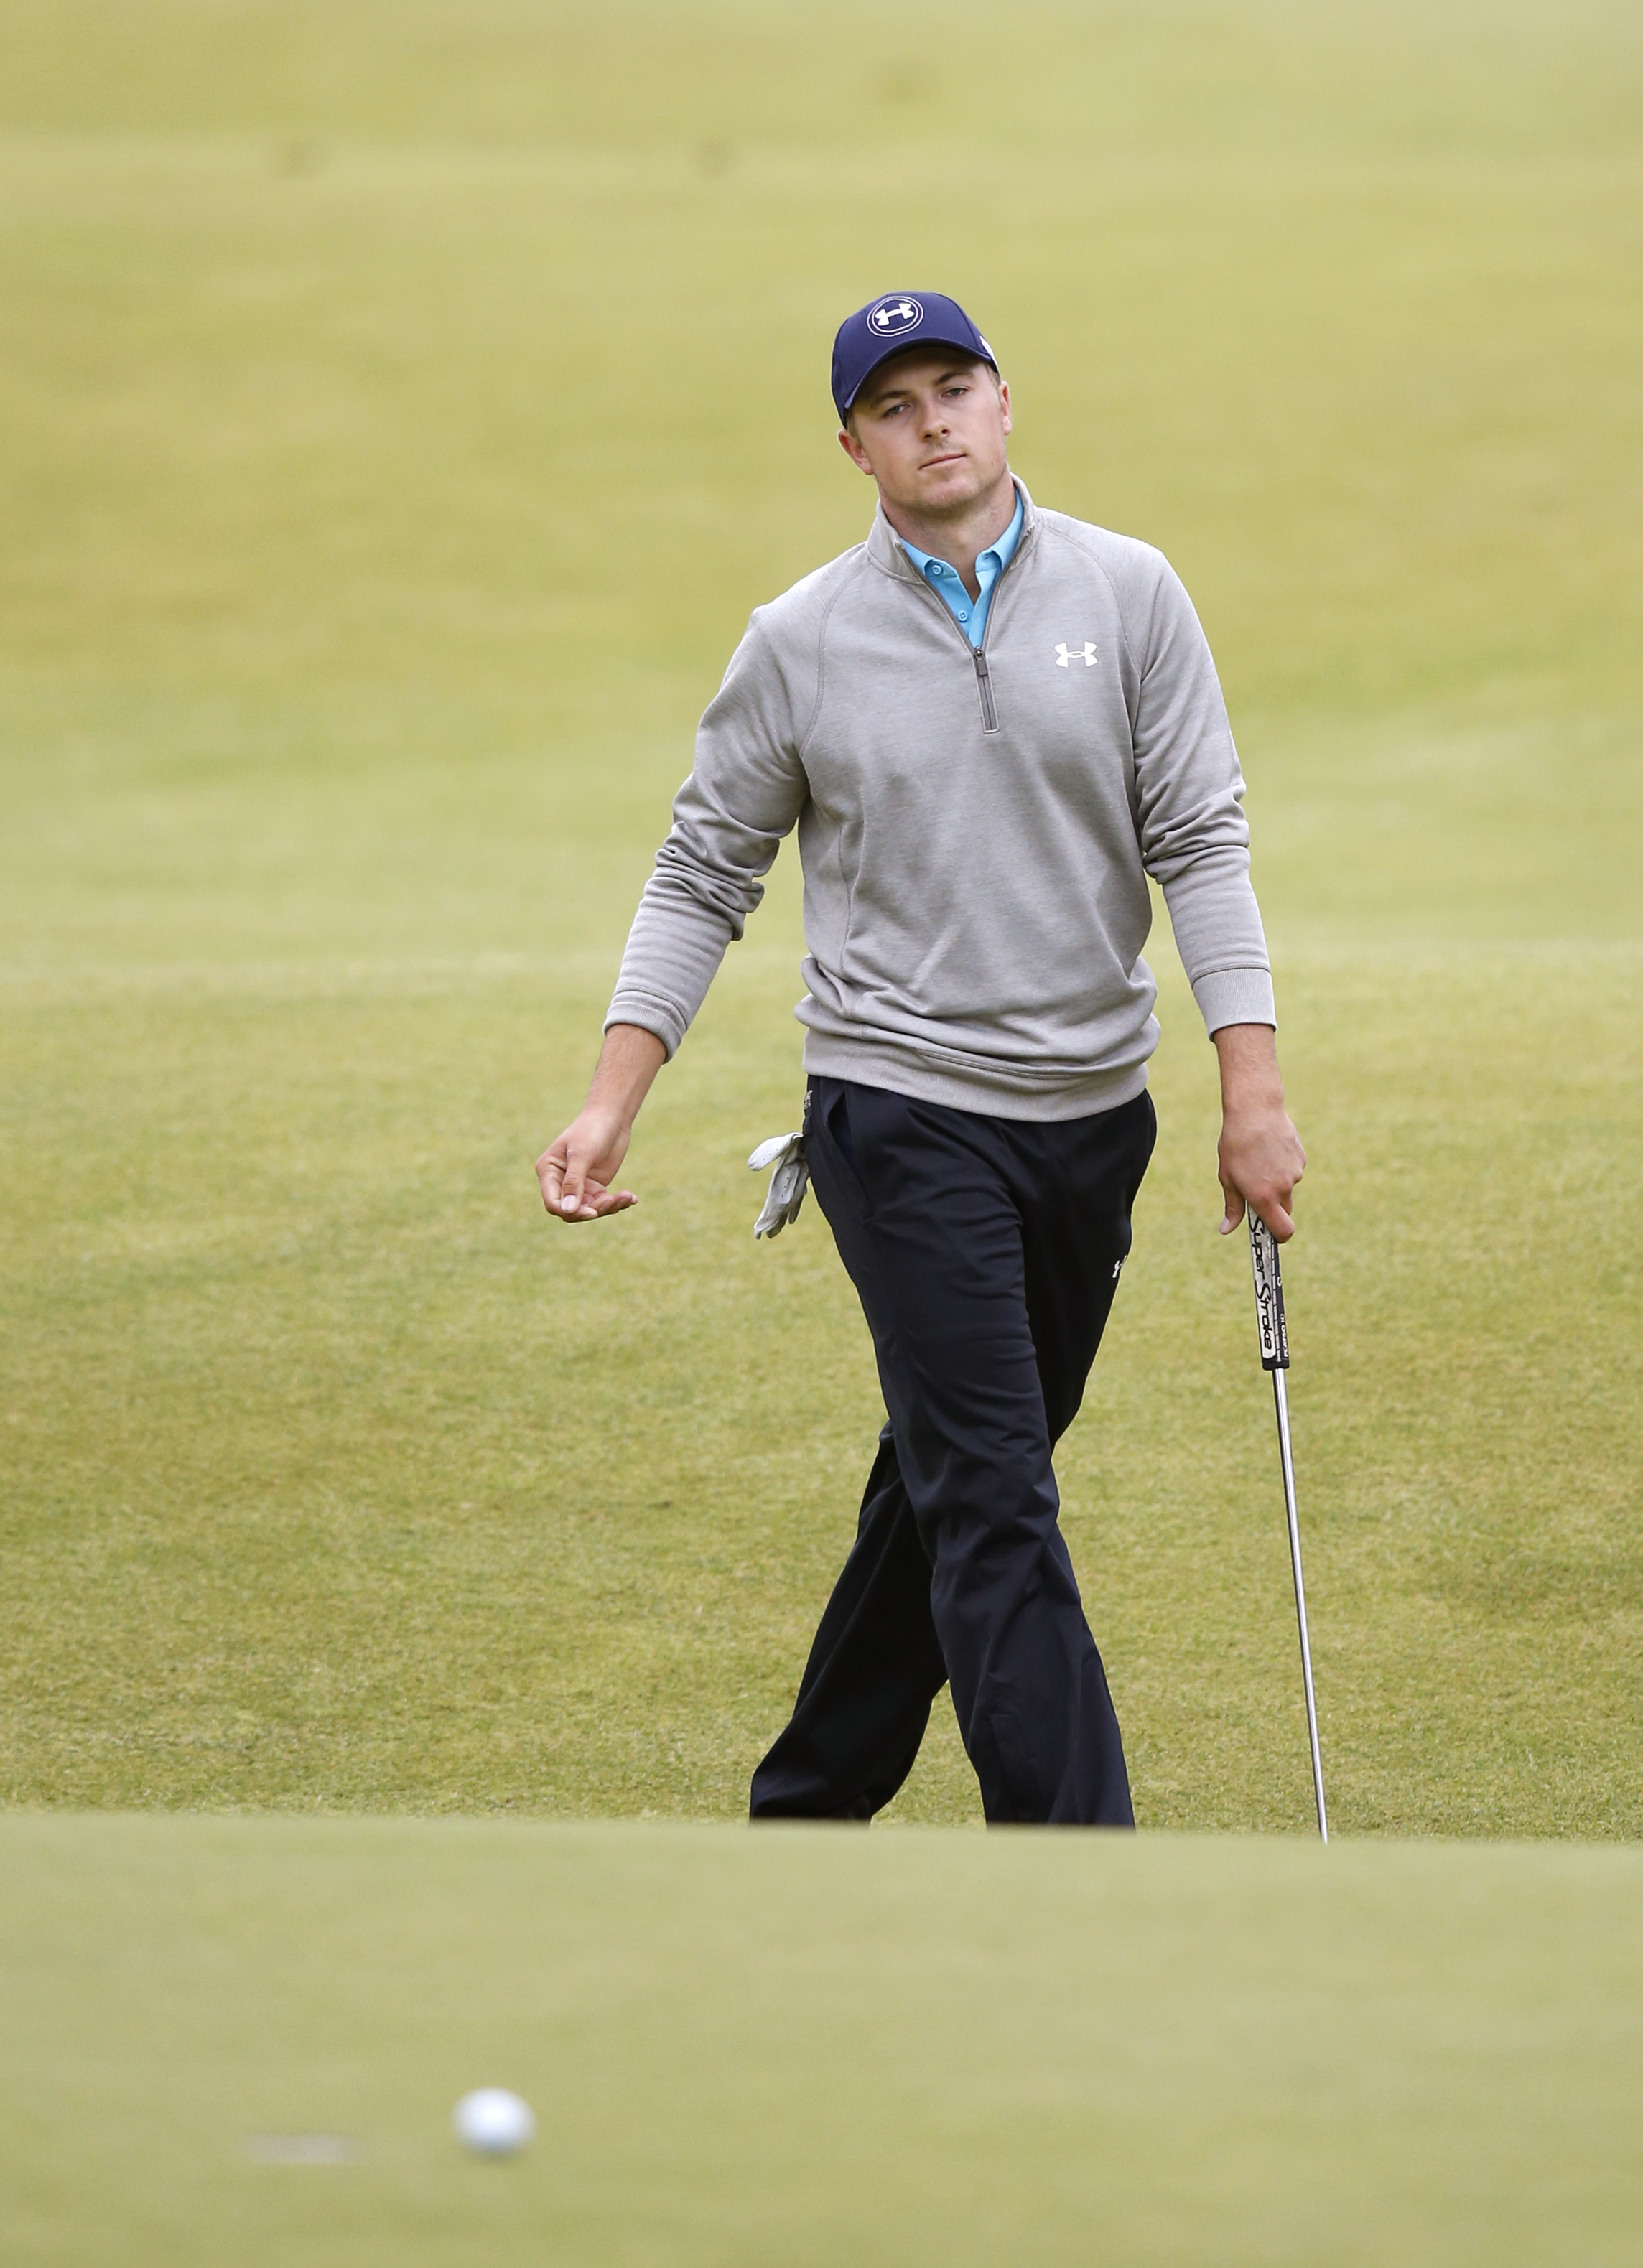 United States' Jordan Spieth reacts after missing a putt on the 18th green in the final round at the British Open Golf Championship at the Old Course, St. Andrews, Scotland, Monday, July 20, 2015.  (AP Photo/Jon Super)